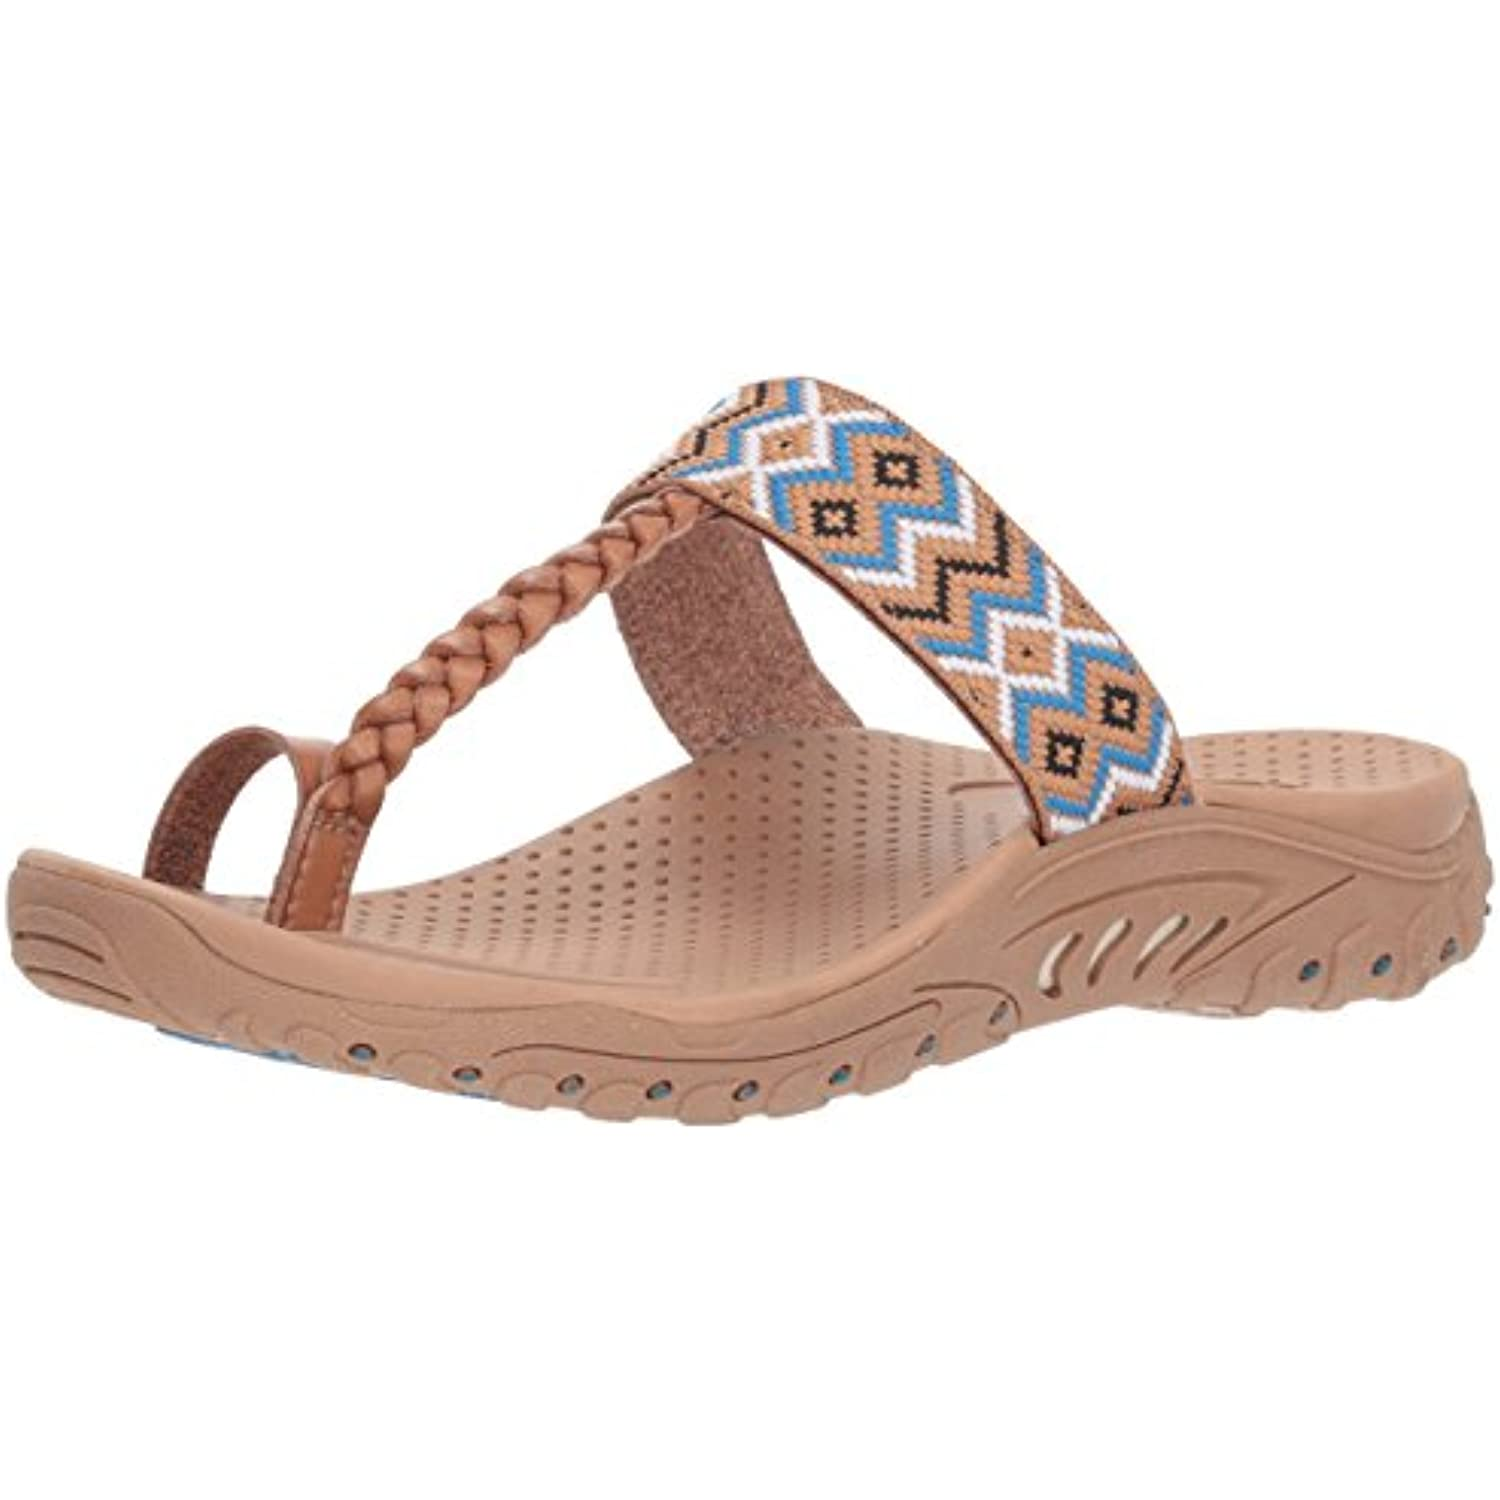 Skechers Femme Reggae - up Bronzer Perle Sandal 6 Etats-Unis Bronzer up 3 UK - B07B53FPBS - 2371f1